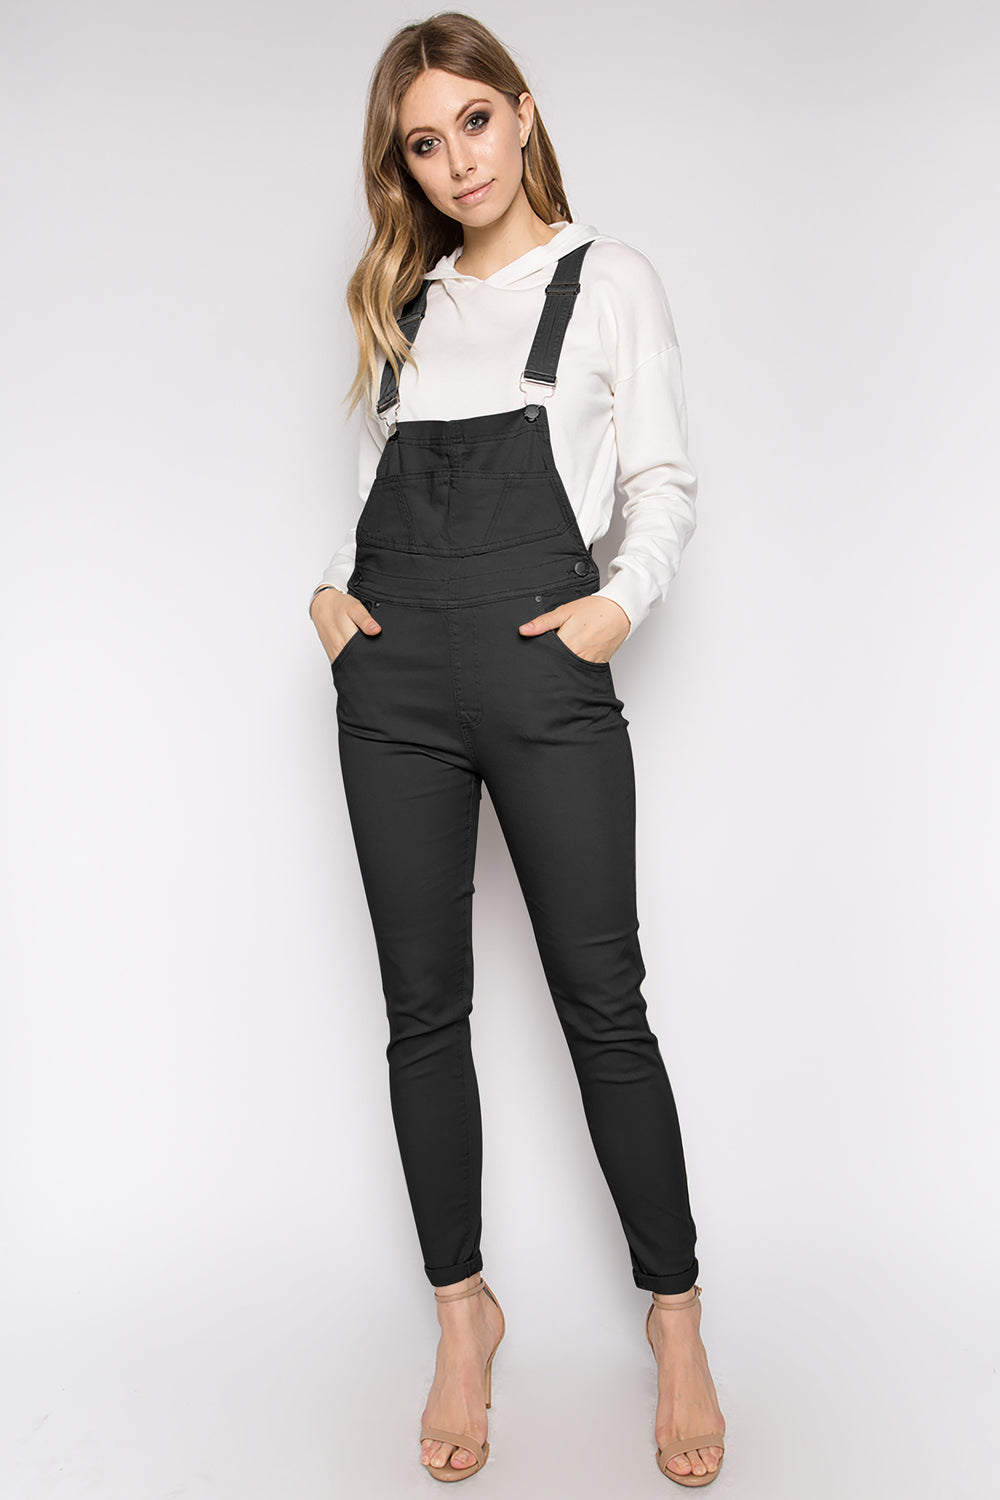 Solid Color Slim Twill Skinny Overalls  l  LoveModa